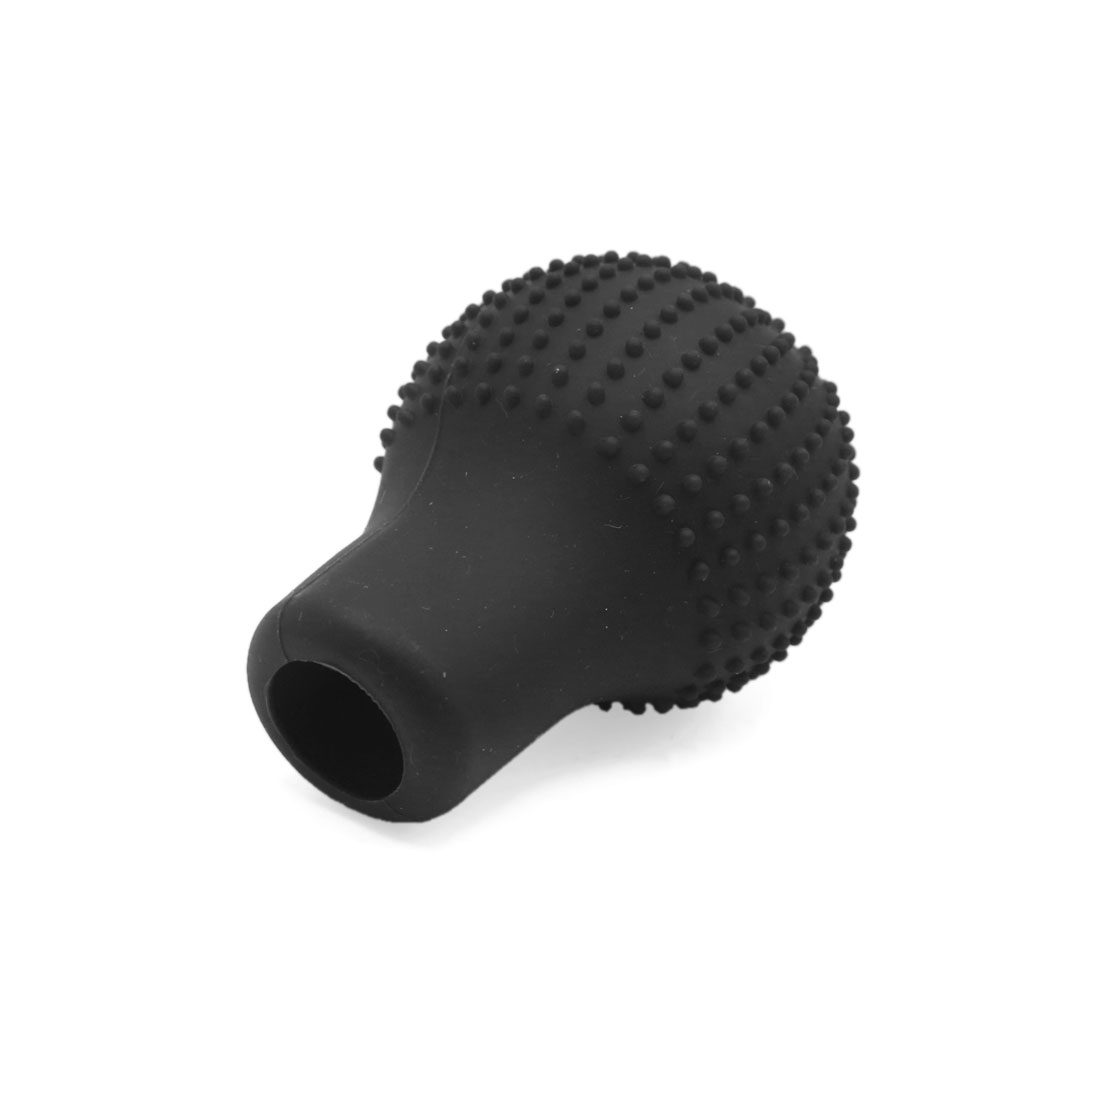 Black Rubber Car Round Hand Brake Head Cover Gear Shift Knob Cushion Protector - image 1 of 3